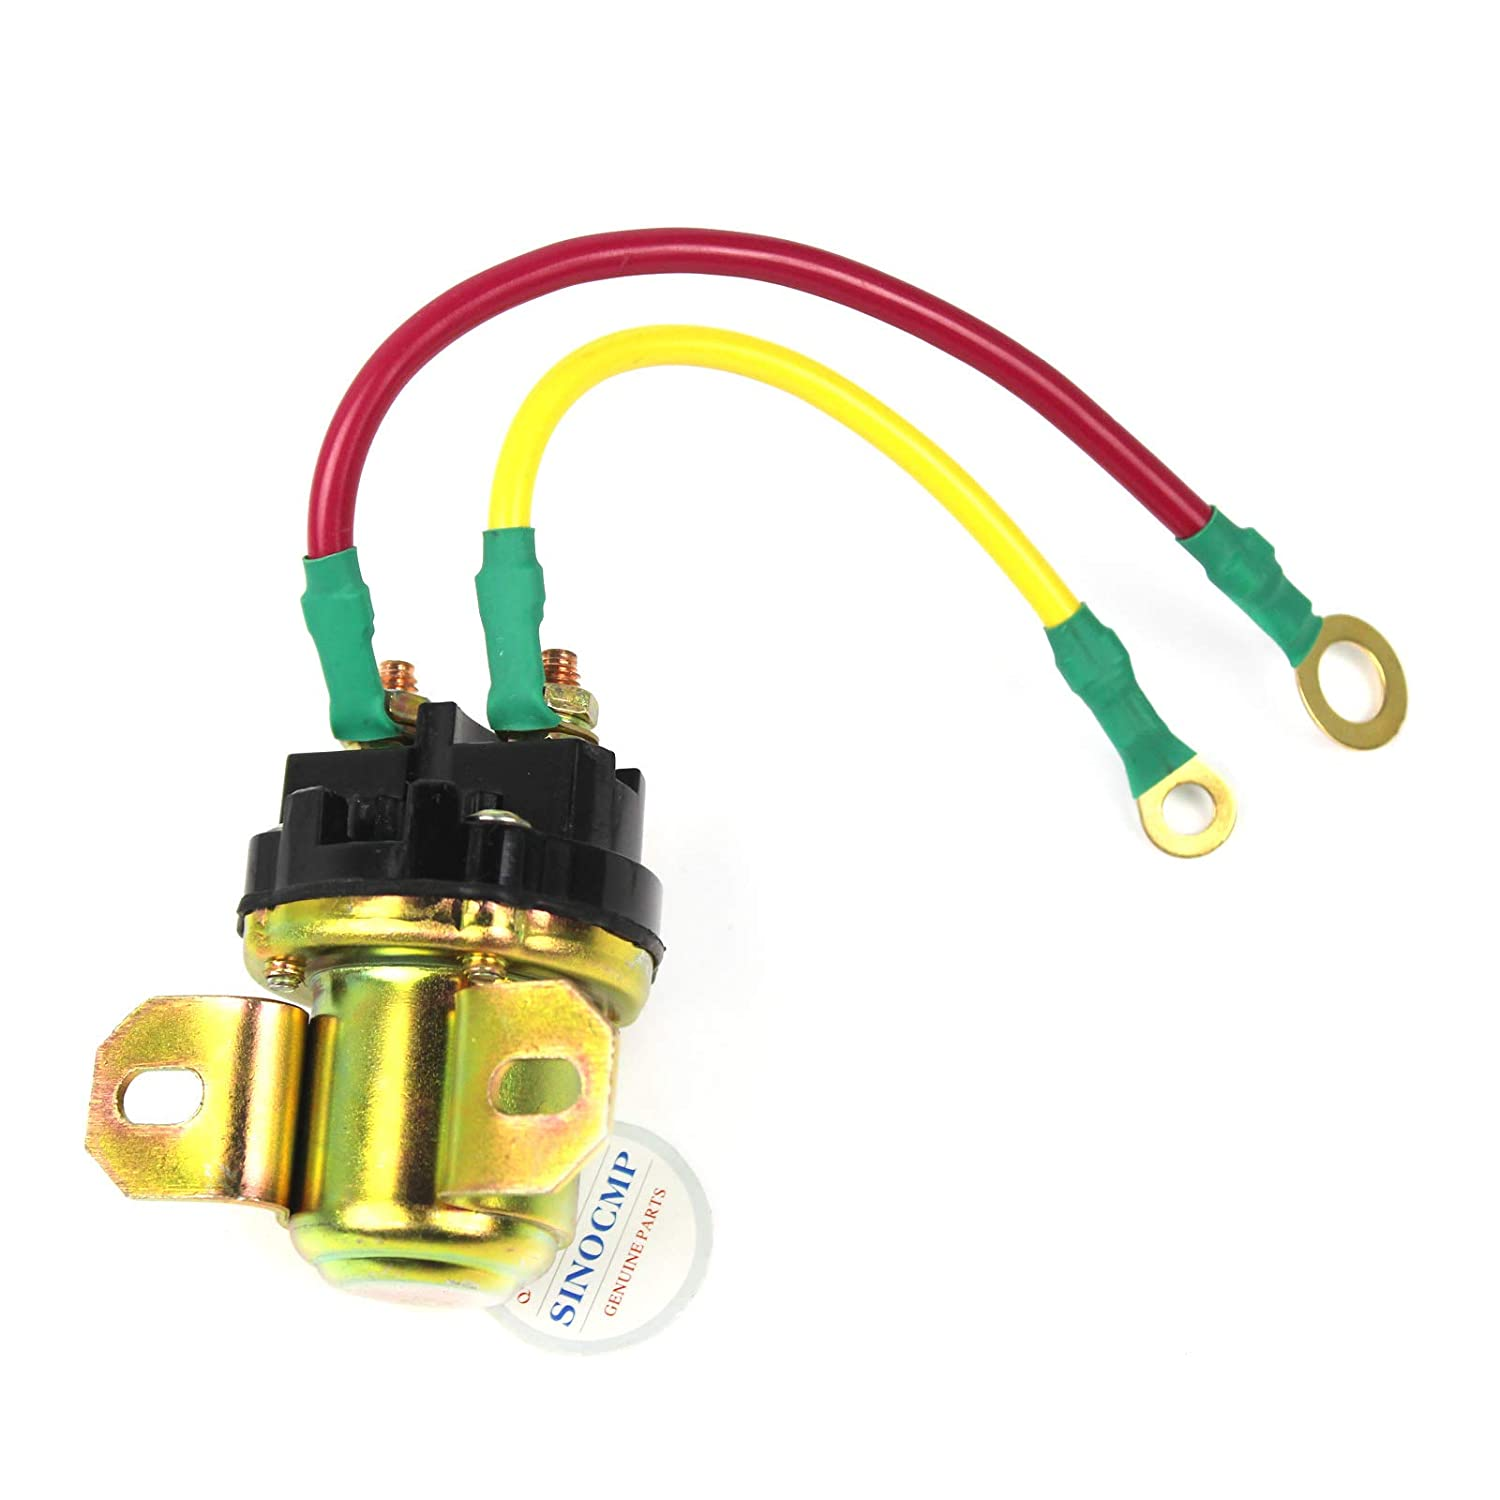 Heater Switch 600-815-2170 - SINOCMP Motor Starter Relay for Komatsu Heater Realy PC200-6 PC-7 Excavator Parts, 3 Month Waranty